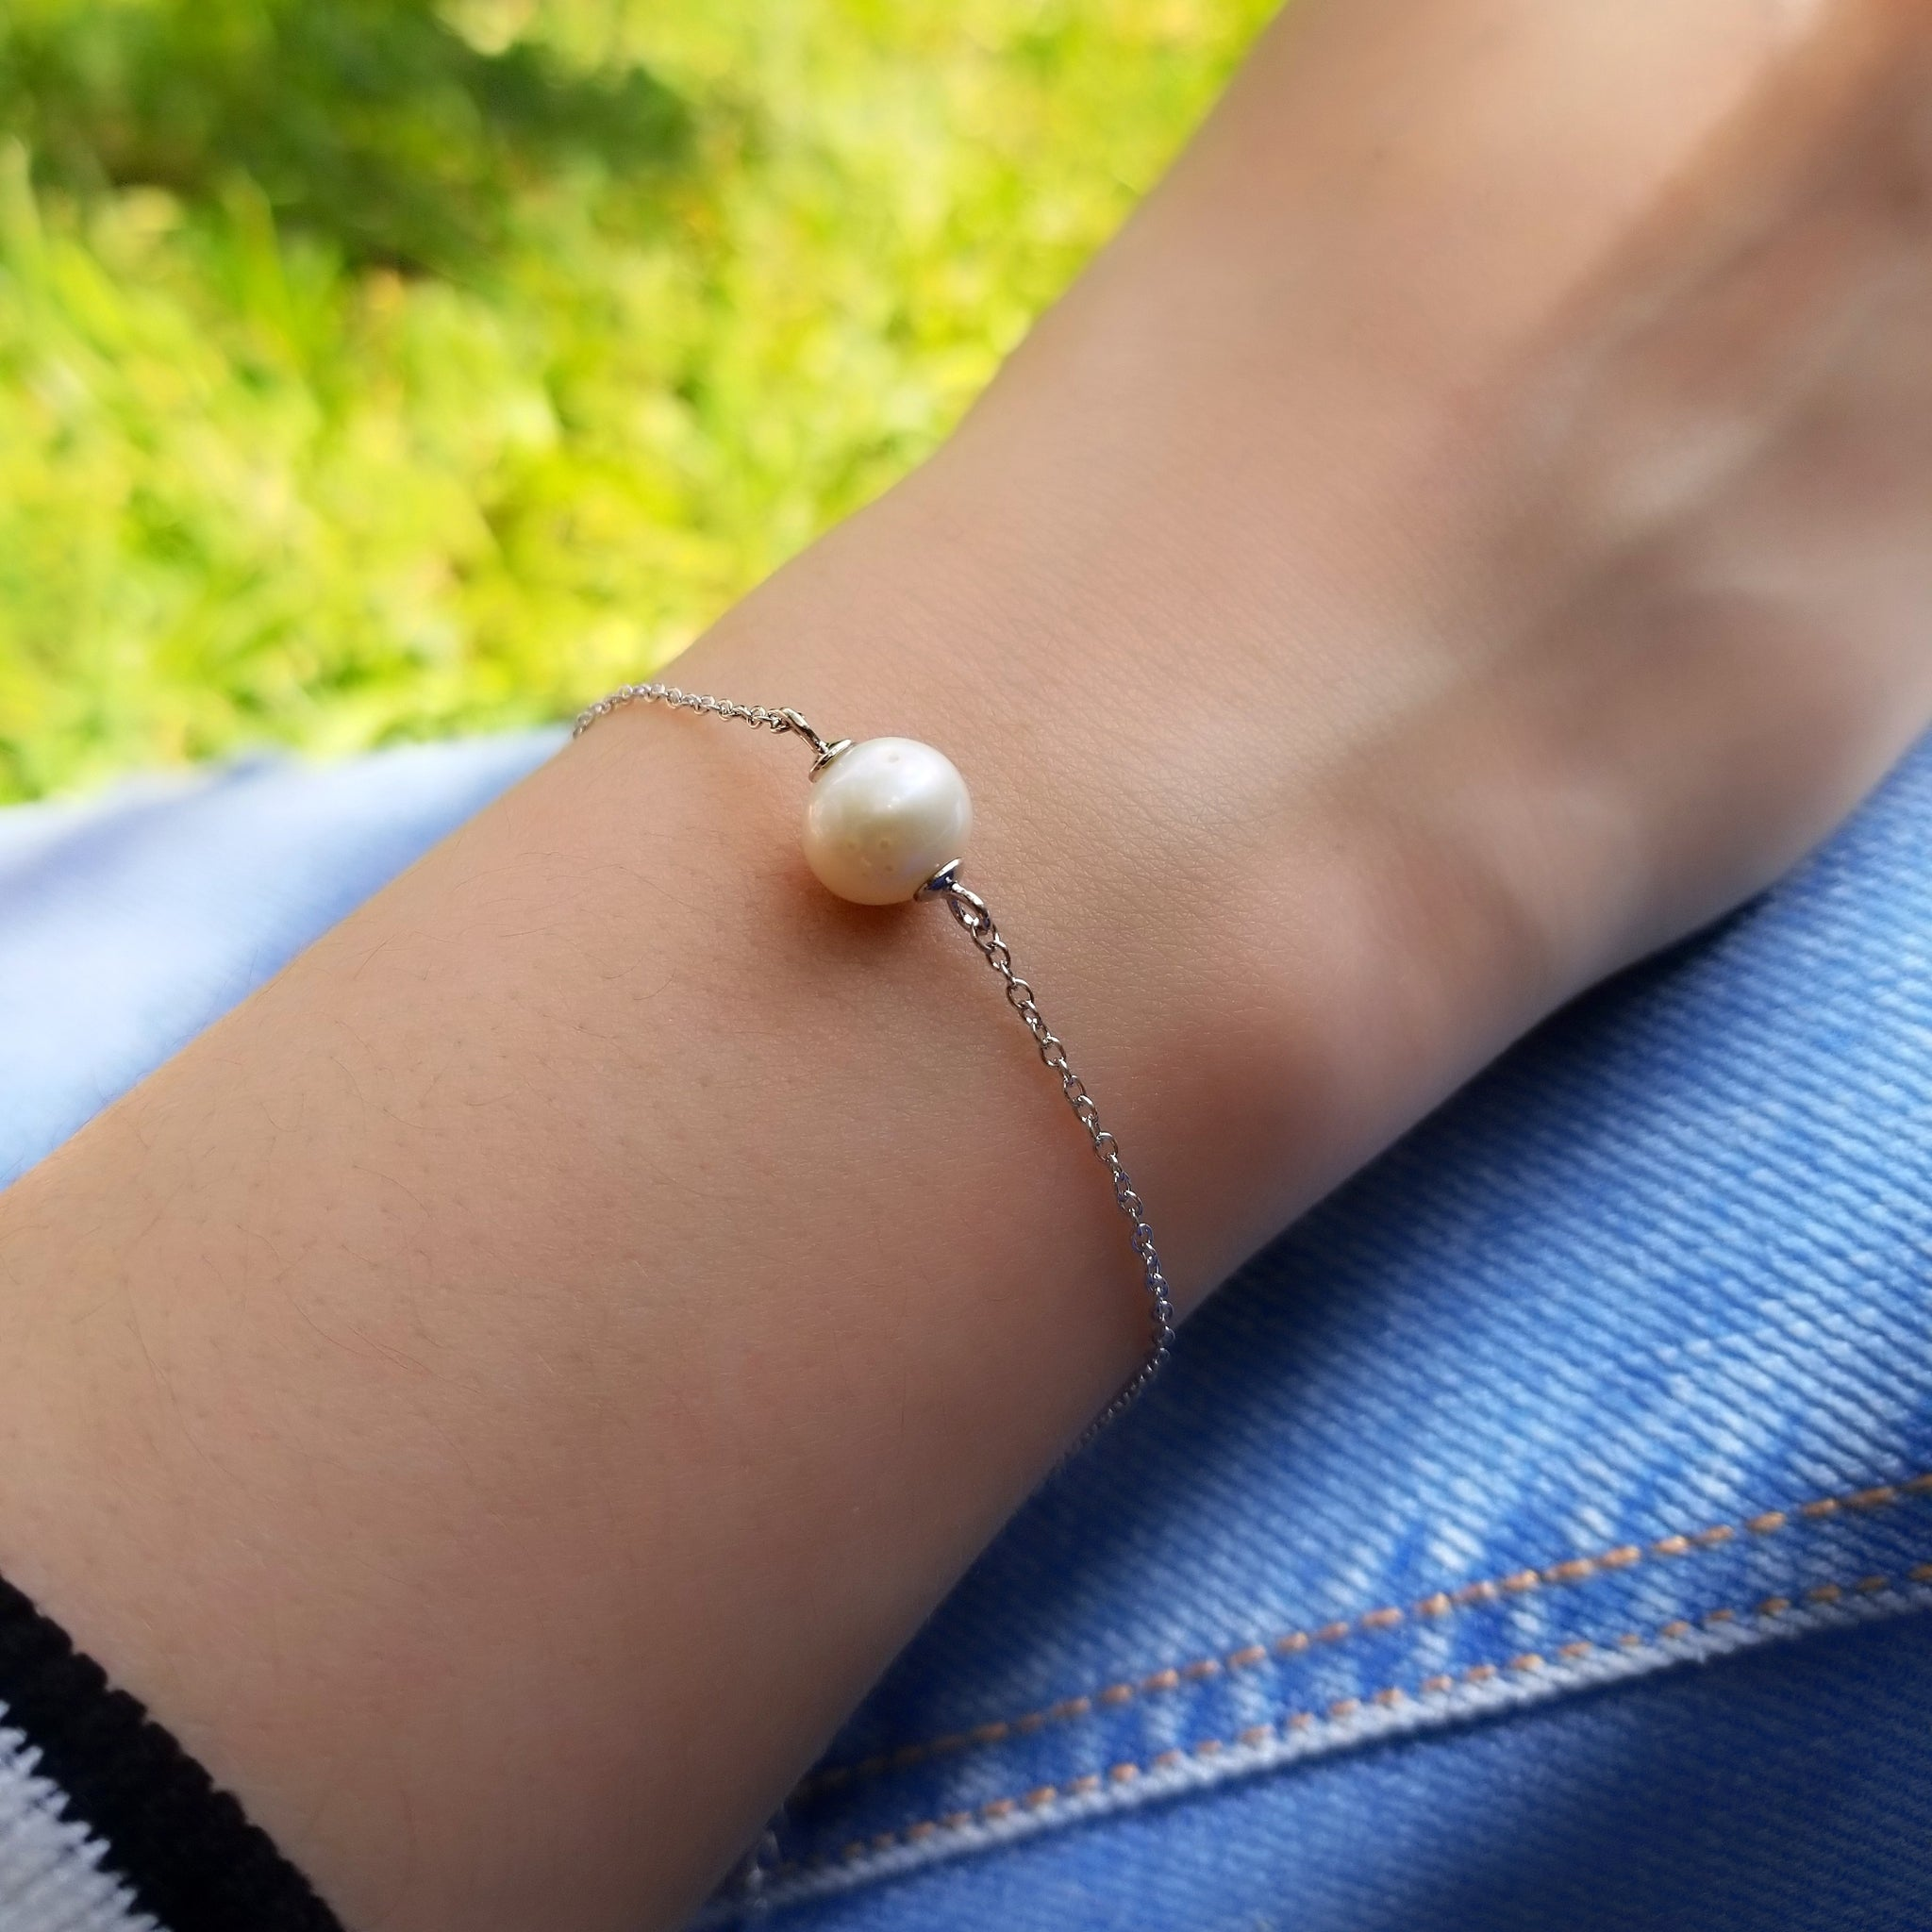 River pearl silver bracelet, white gold-plated